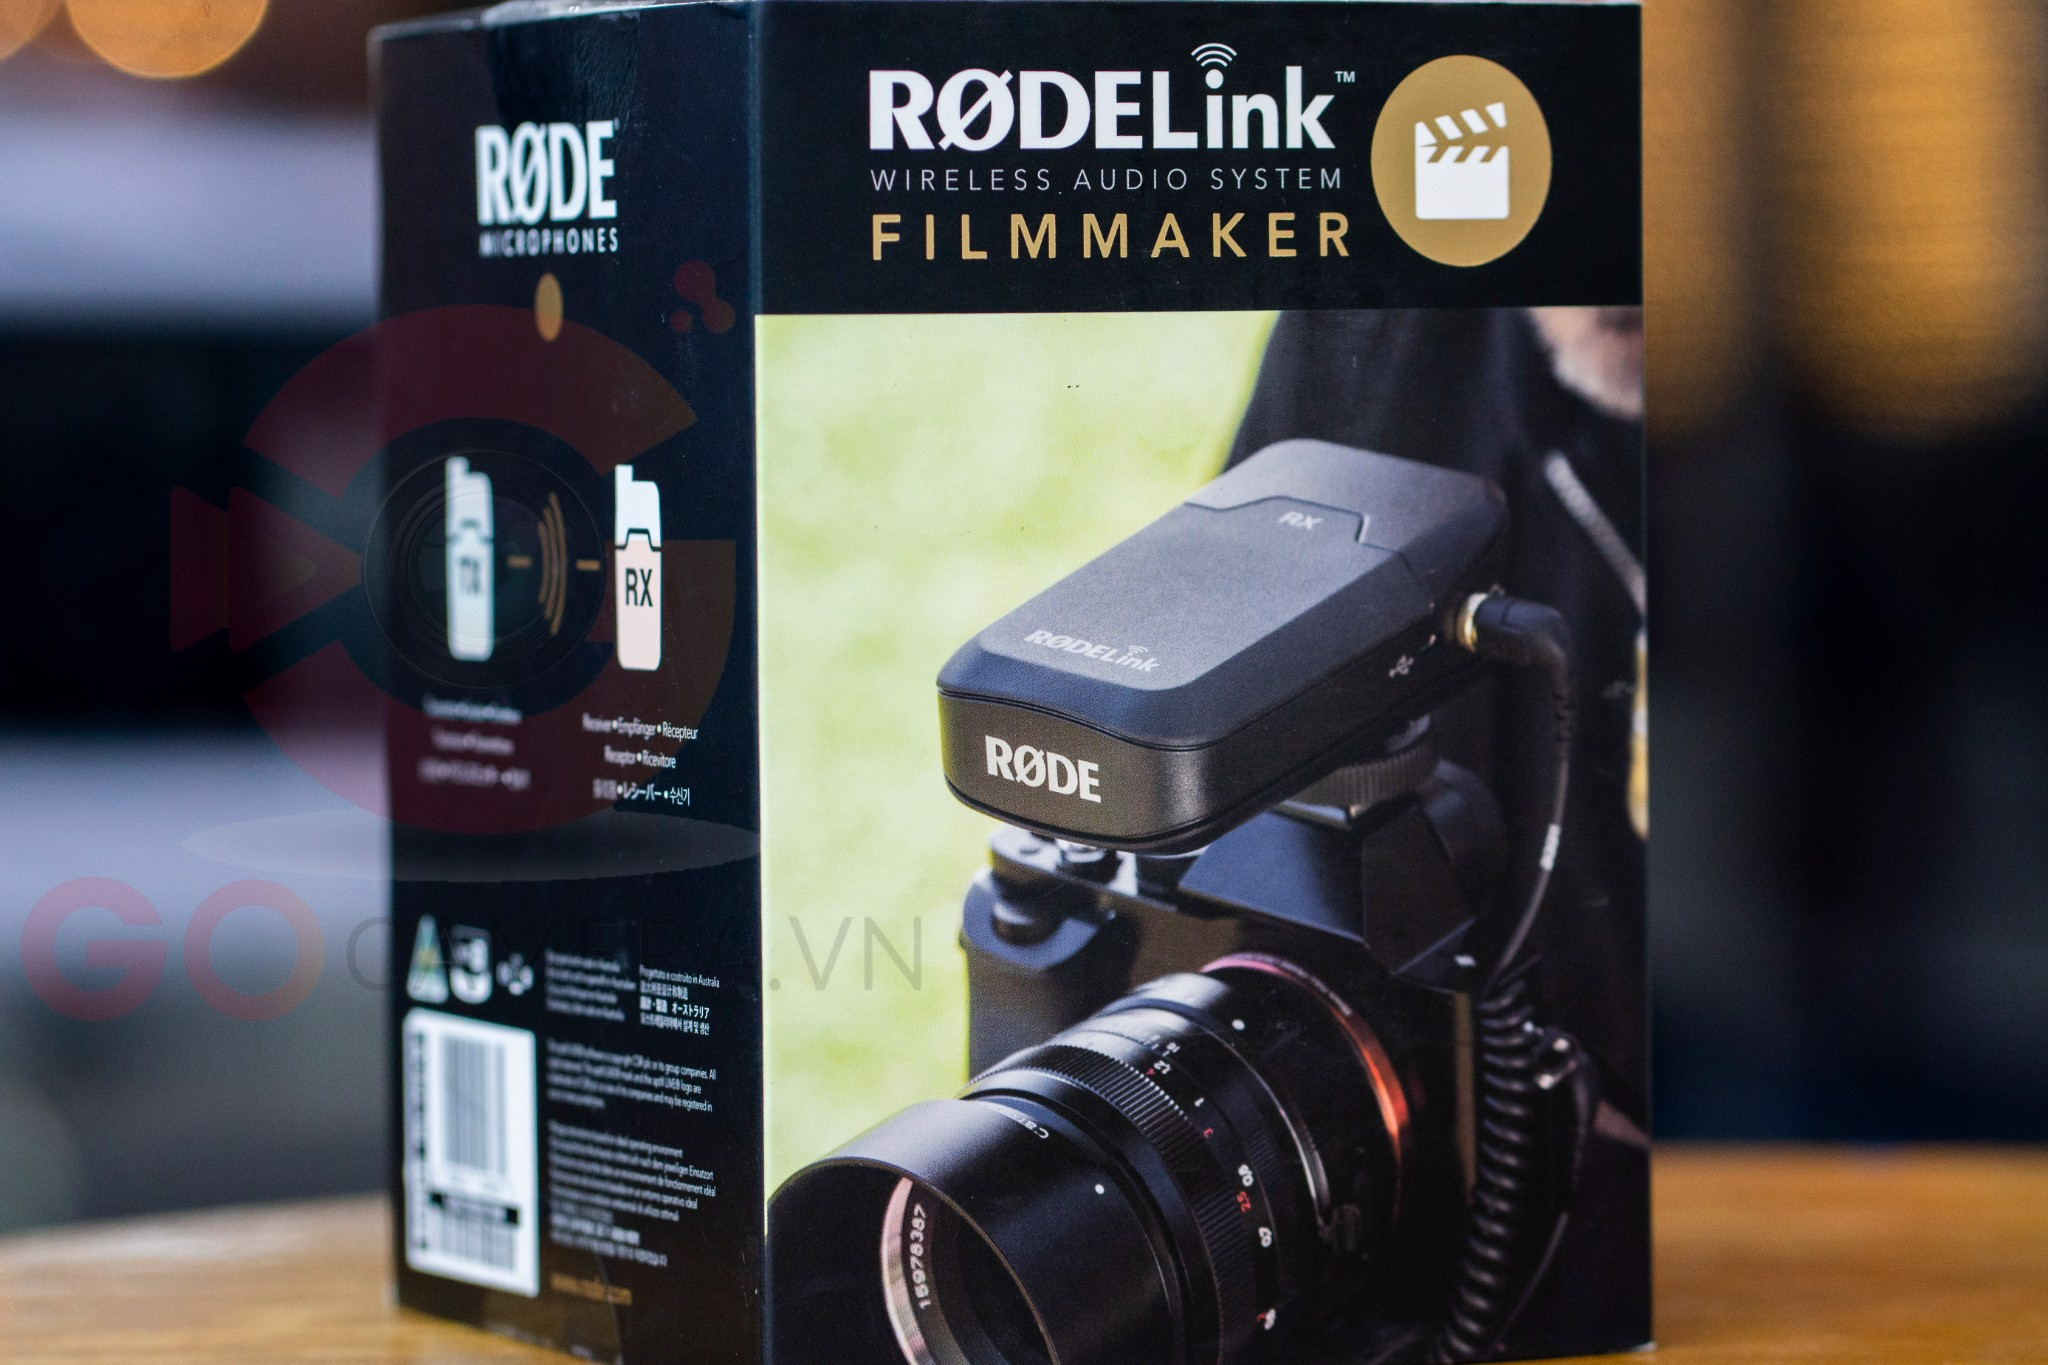 Rode RODELink Filmmaker Kit Digital Camera